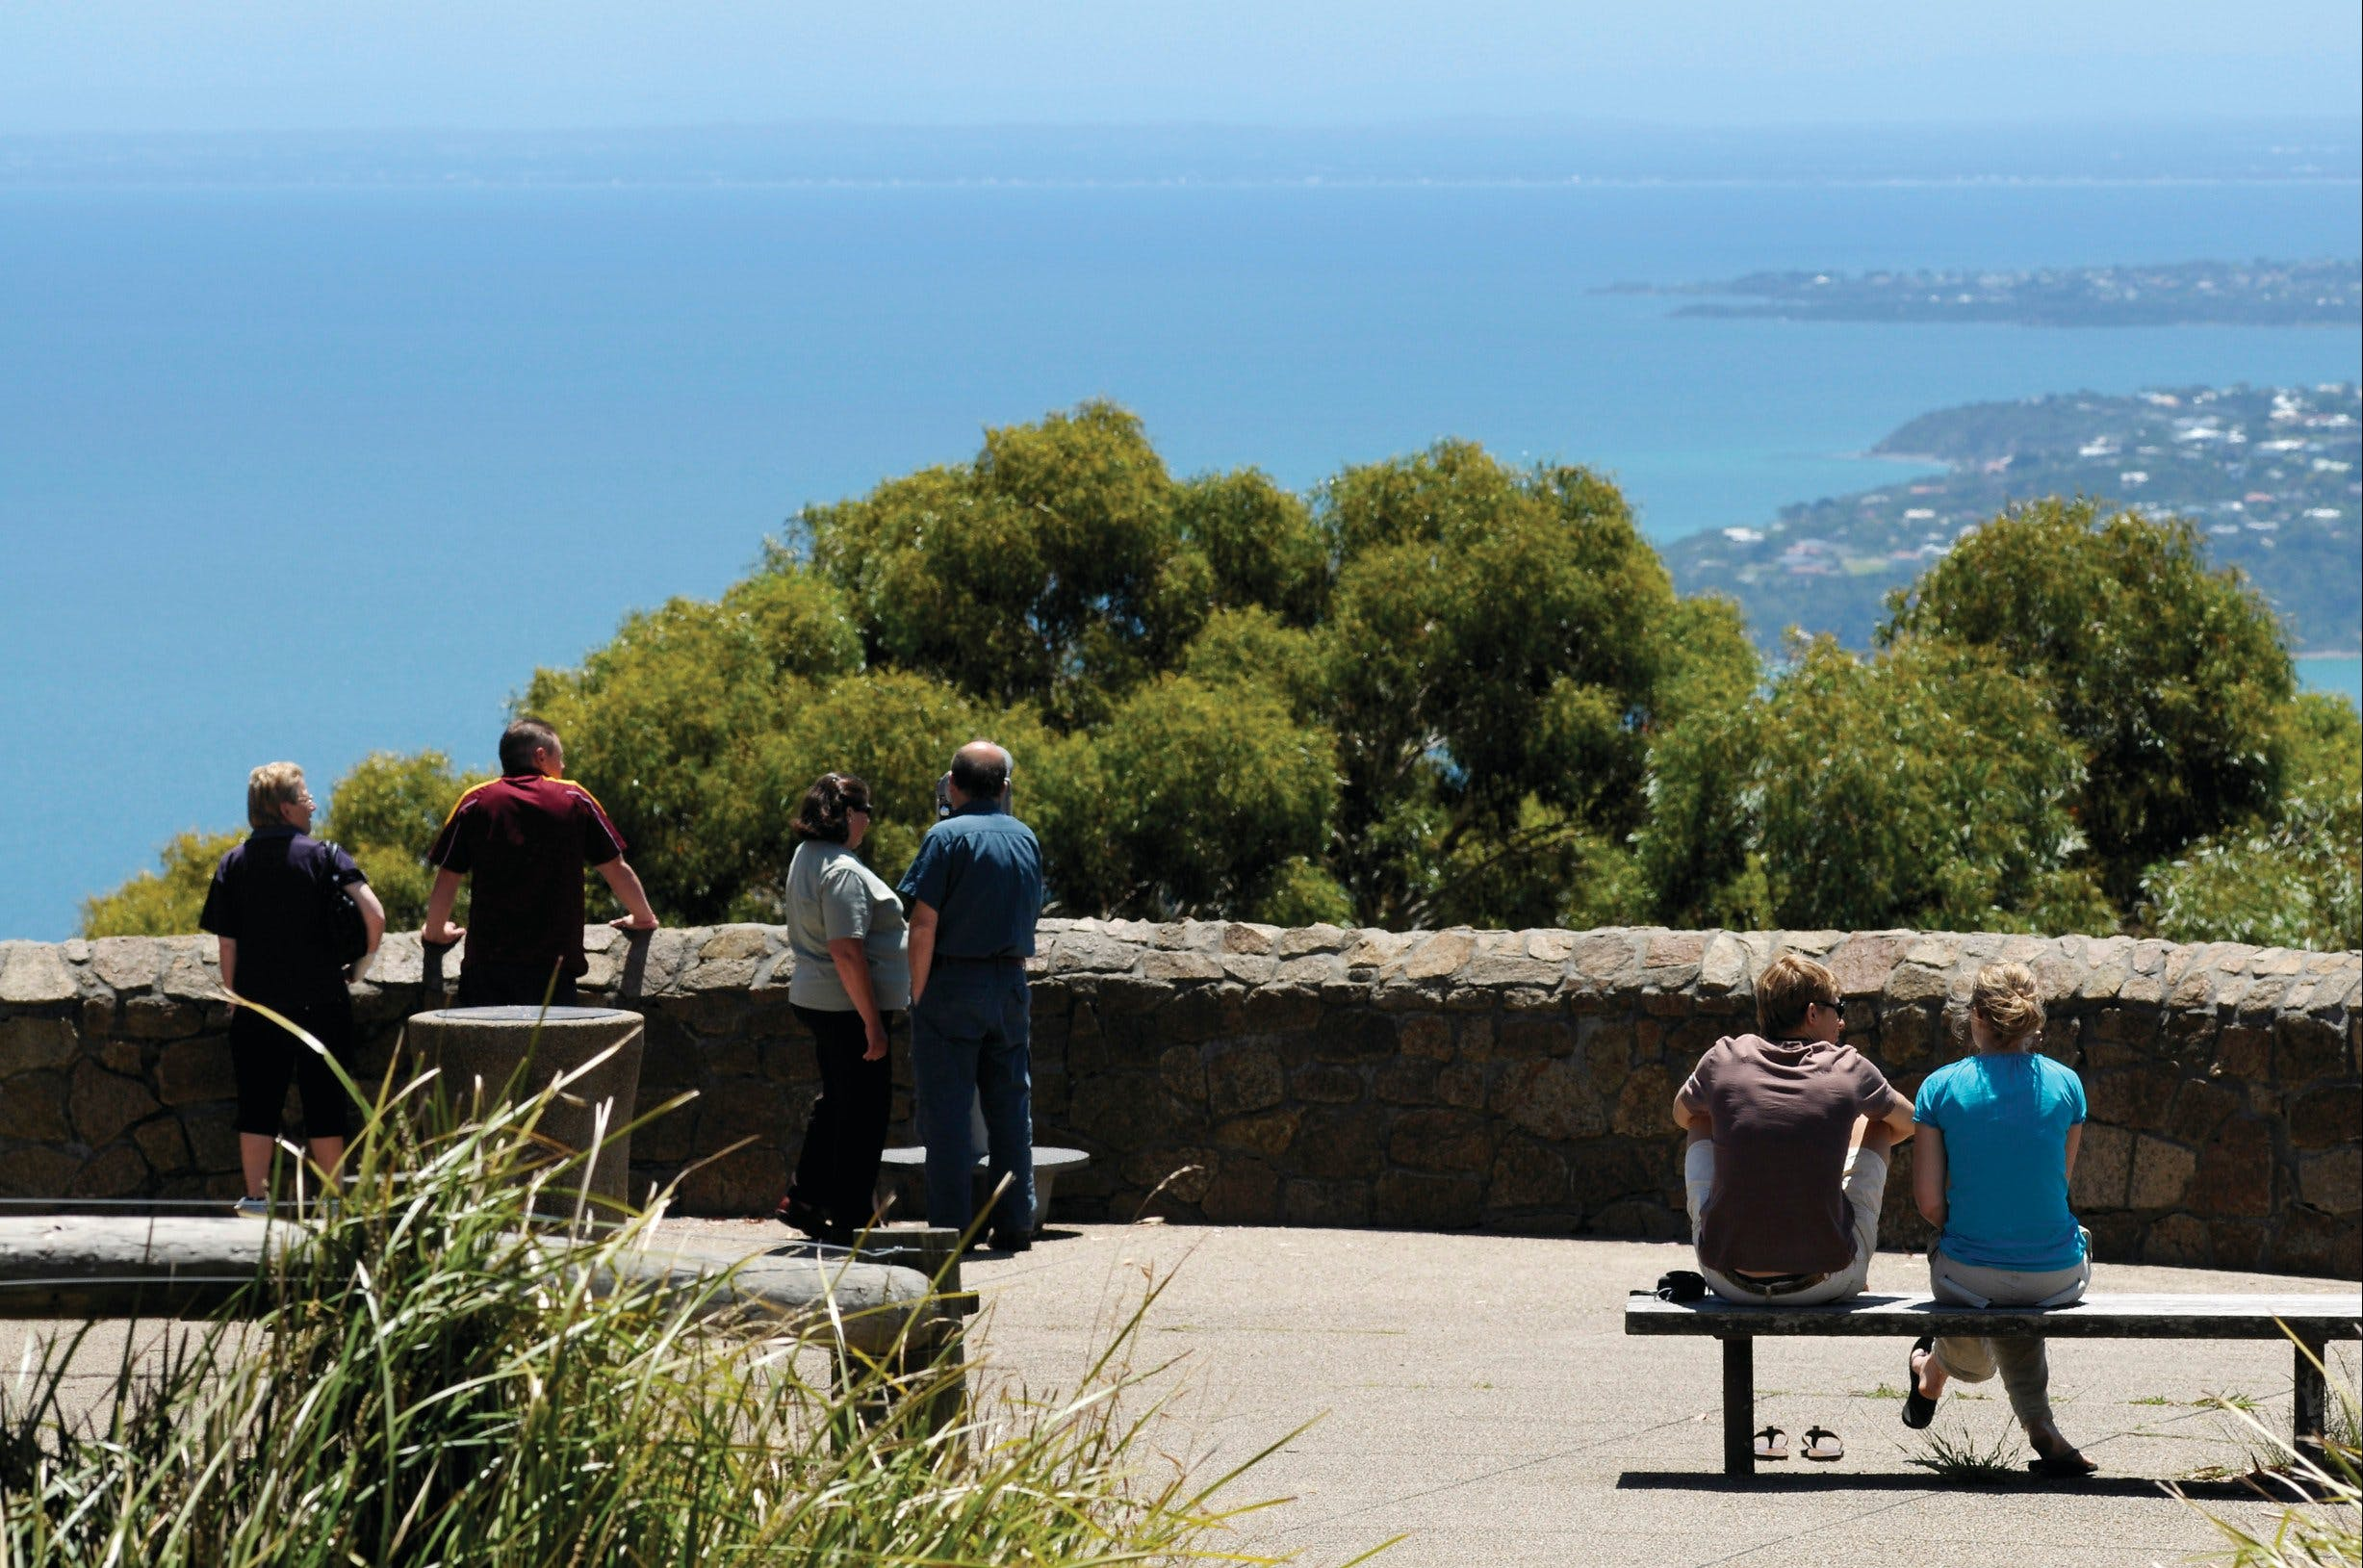 Arthurs Seat State Park - Find Attractions